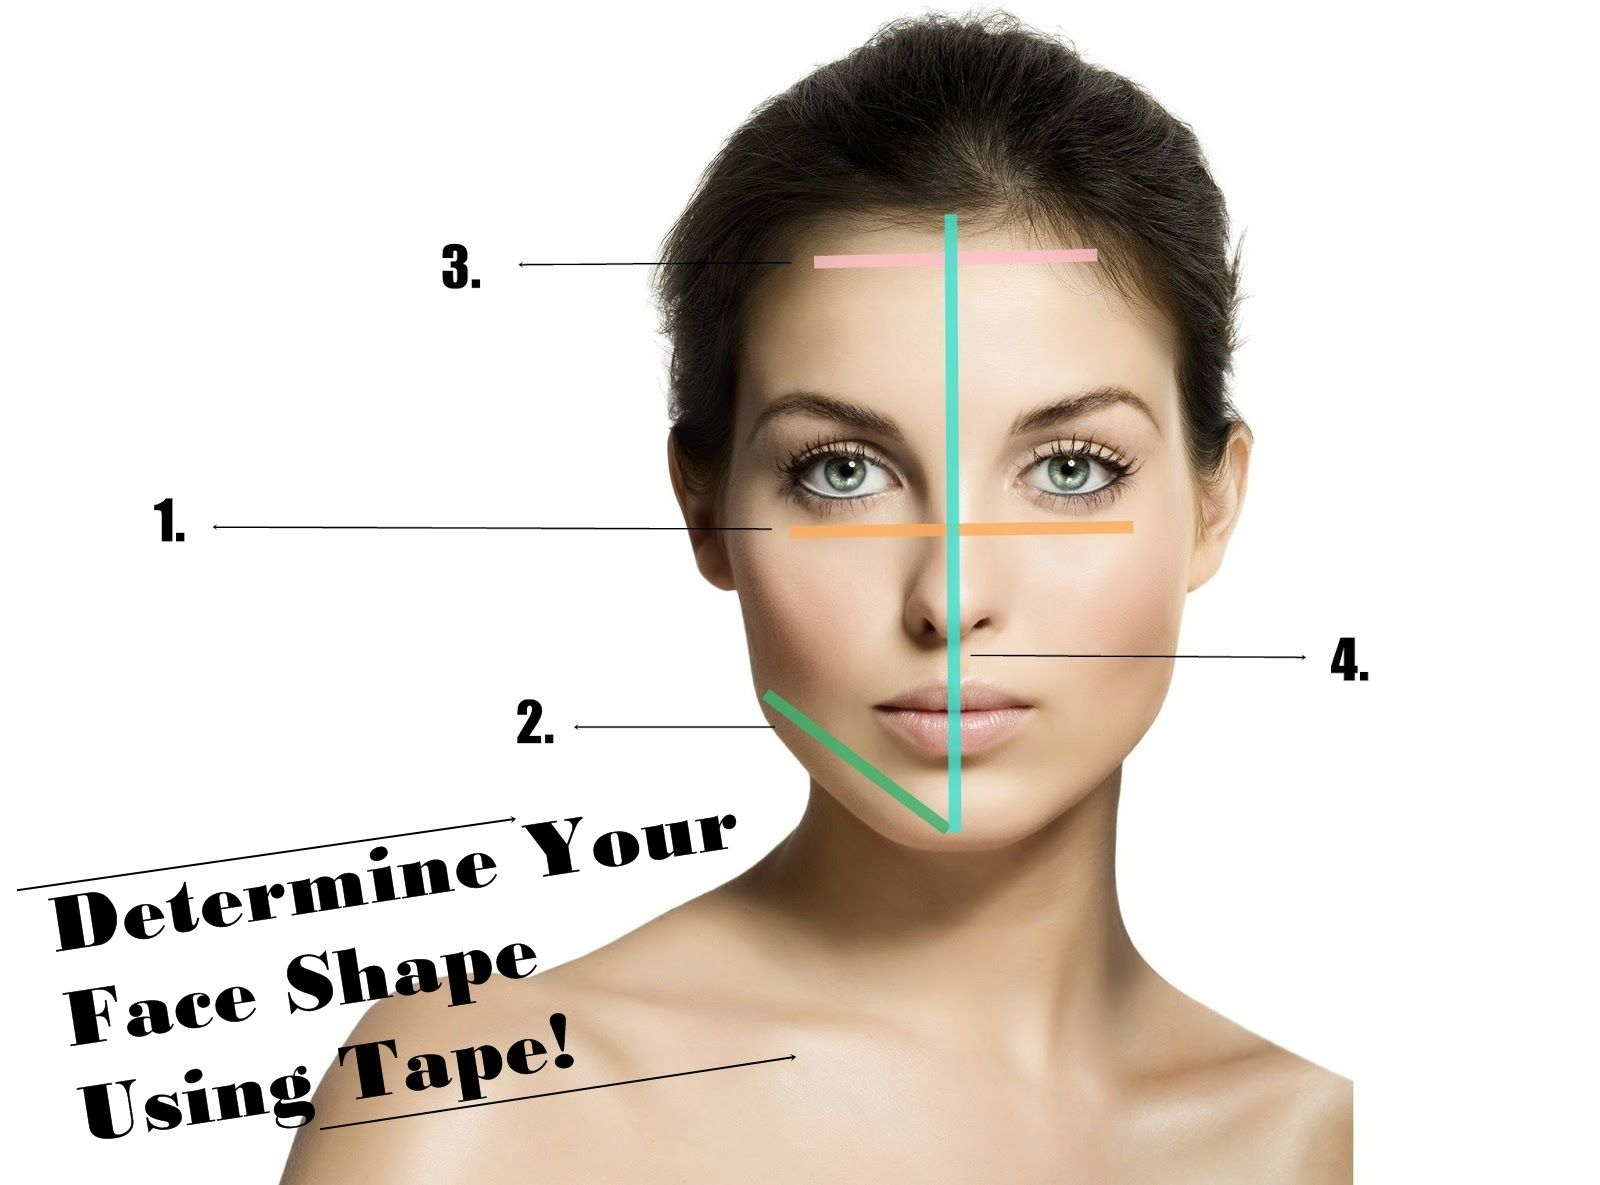 How to choose a hair style oval face type - Vanity Case Box How To Determine Your Face Shape Using Tape